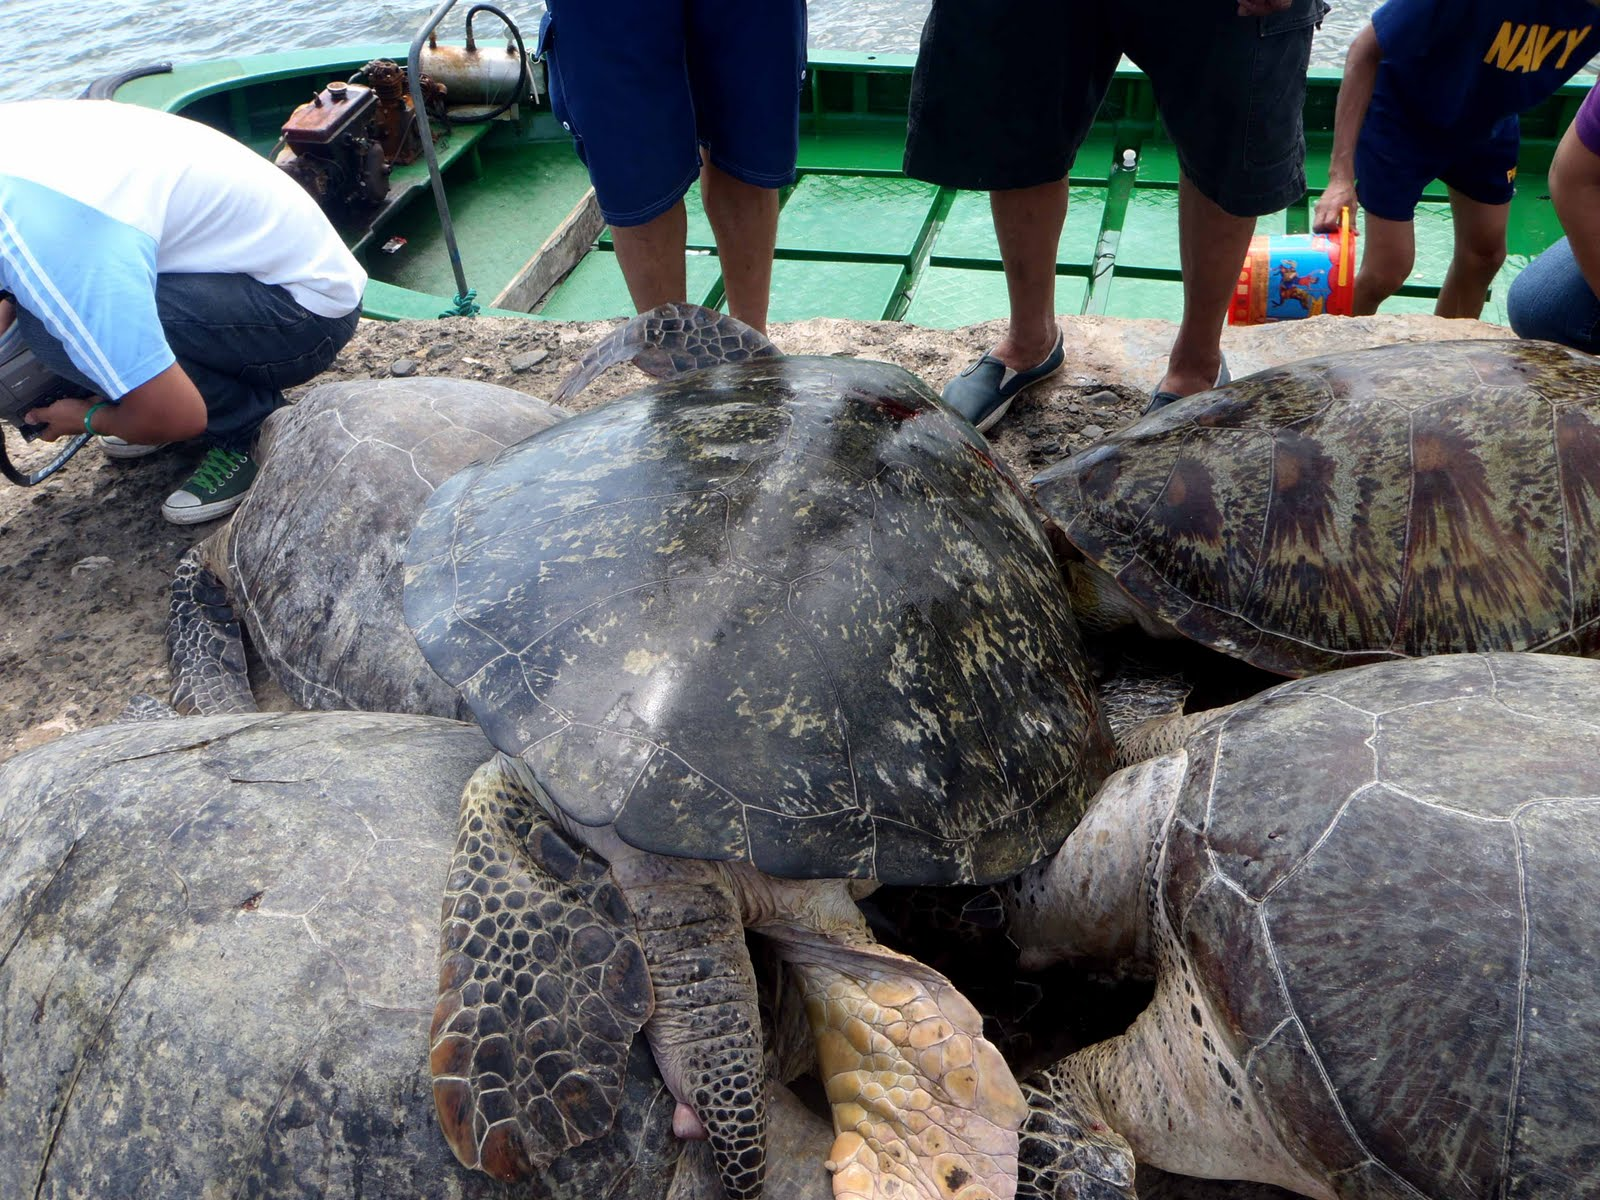 6%2BChinese%2Bcharged%2Bfor%2Bturtle%2Bcatch%2Bin%2BPhilippines%2B1-762555 - Philippine Turtles Stolen by China - Talk of the Town